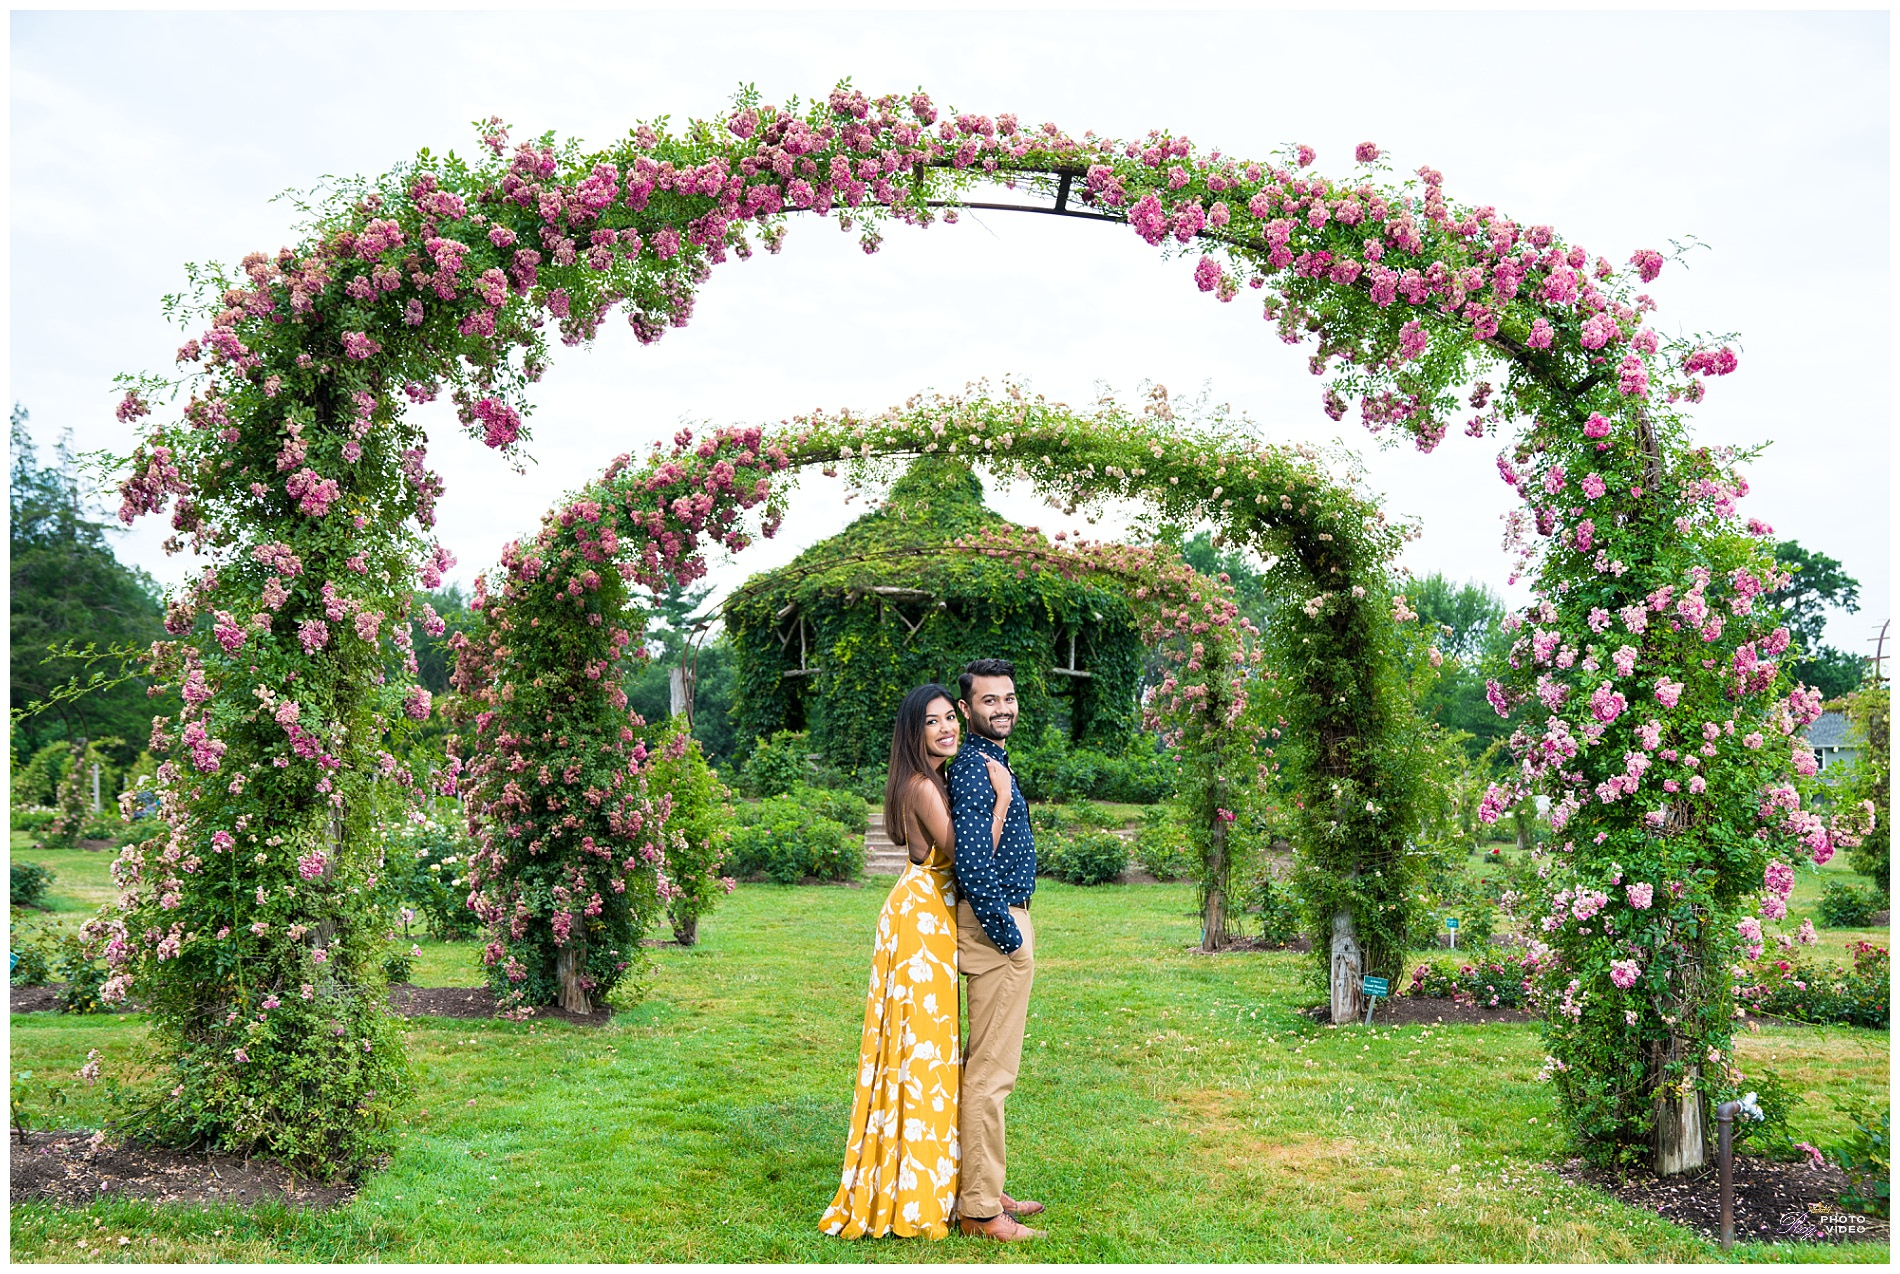 Elizabeth-Park-Rose-Garden-Hartford-CT-Engagement-Shoot-Pratiti-Suraj-11.jpg